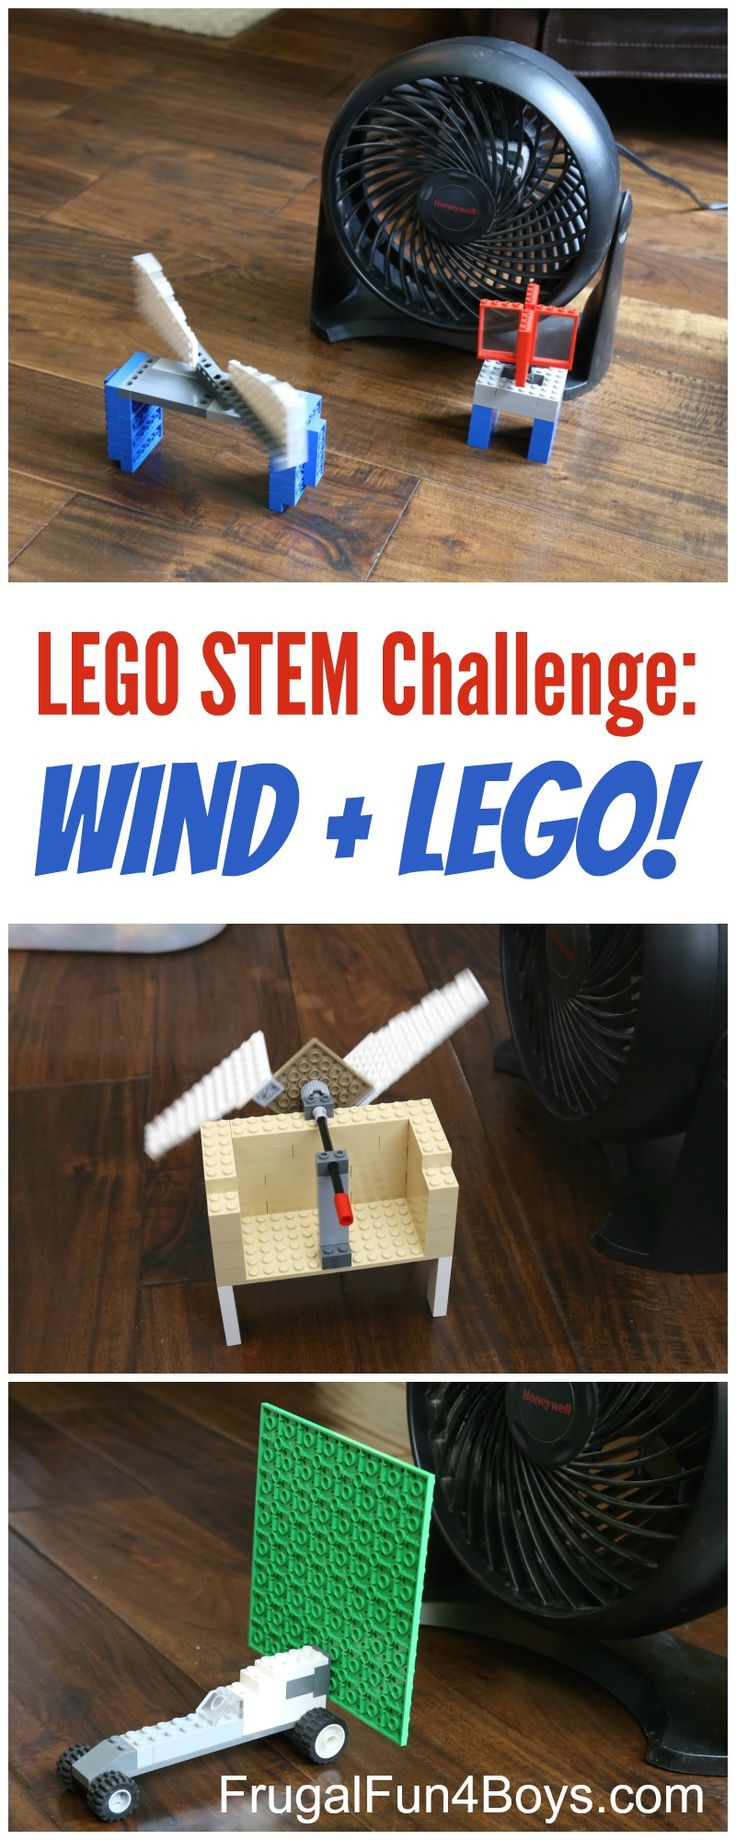 LEGO STEM Challenge: Wind Powered LEGO Contraptions! How to build working windmills and more.